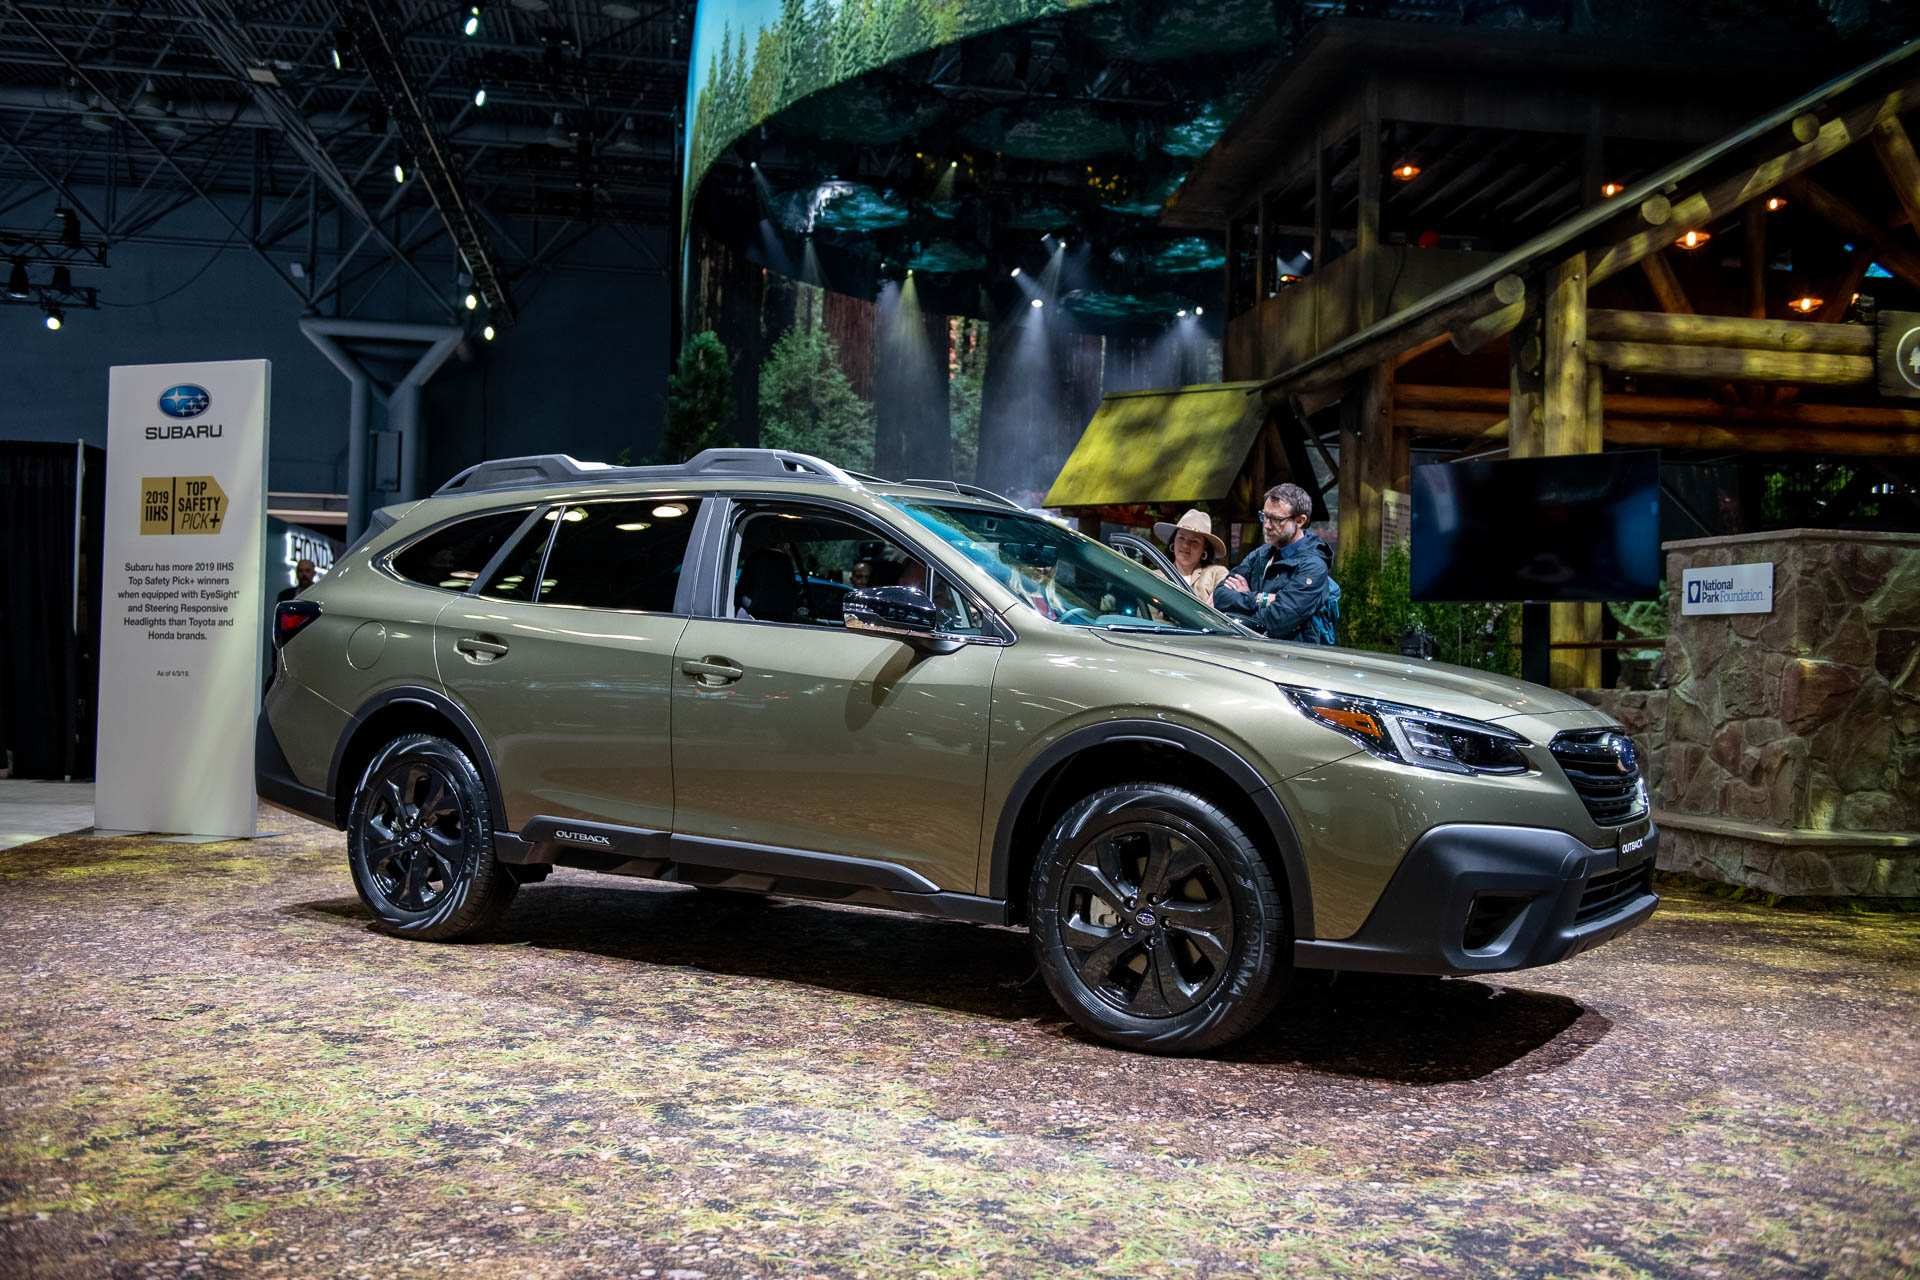 18 All New Subaru Outback Update 2020 Style